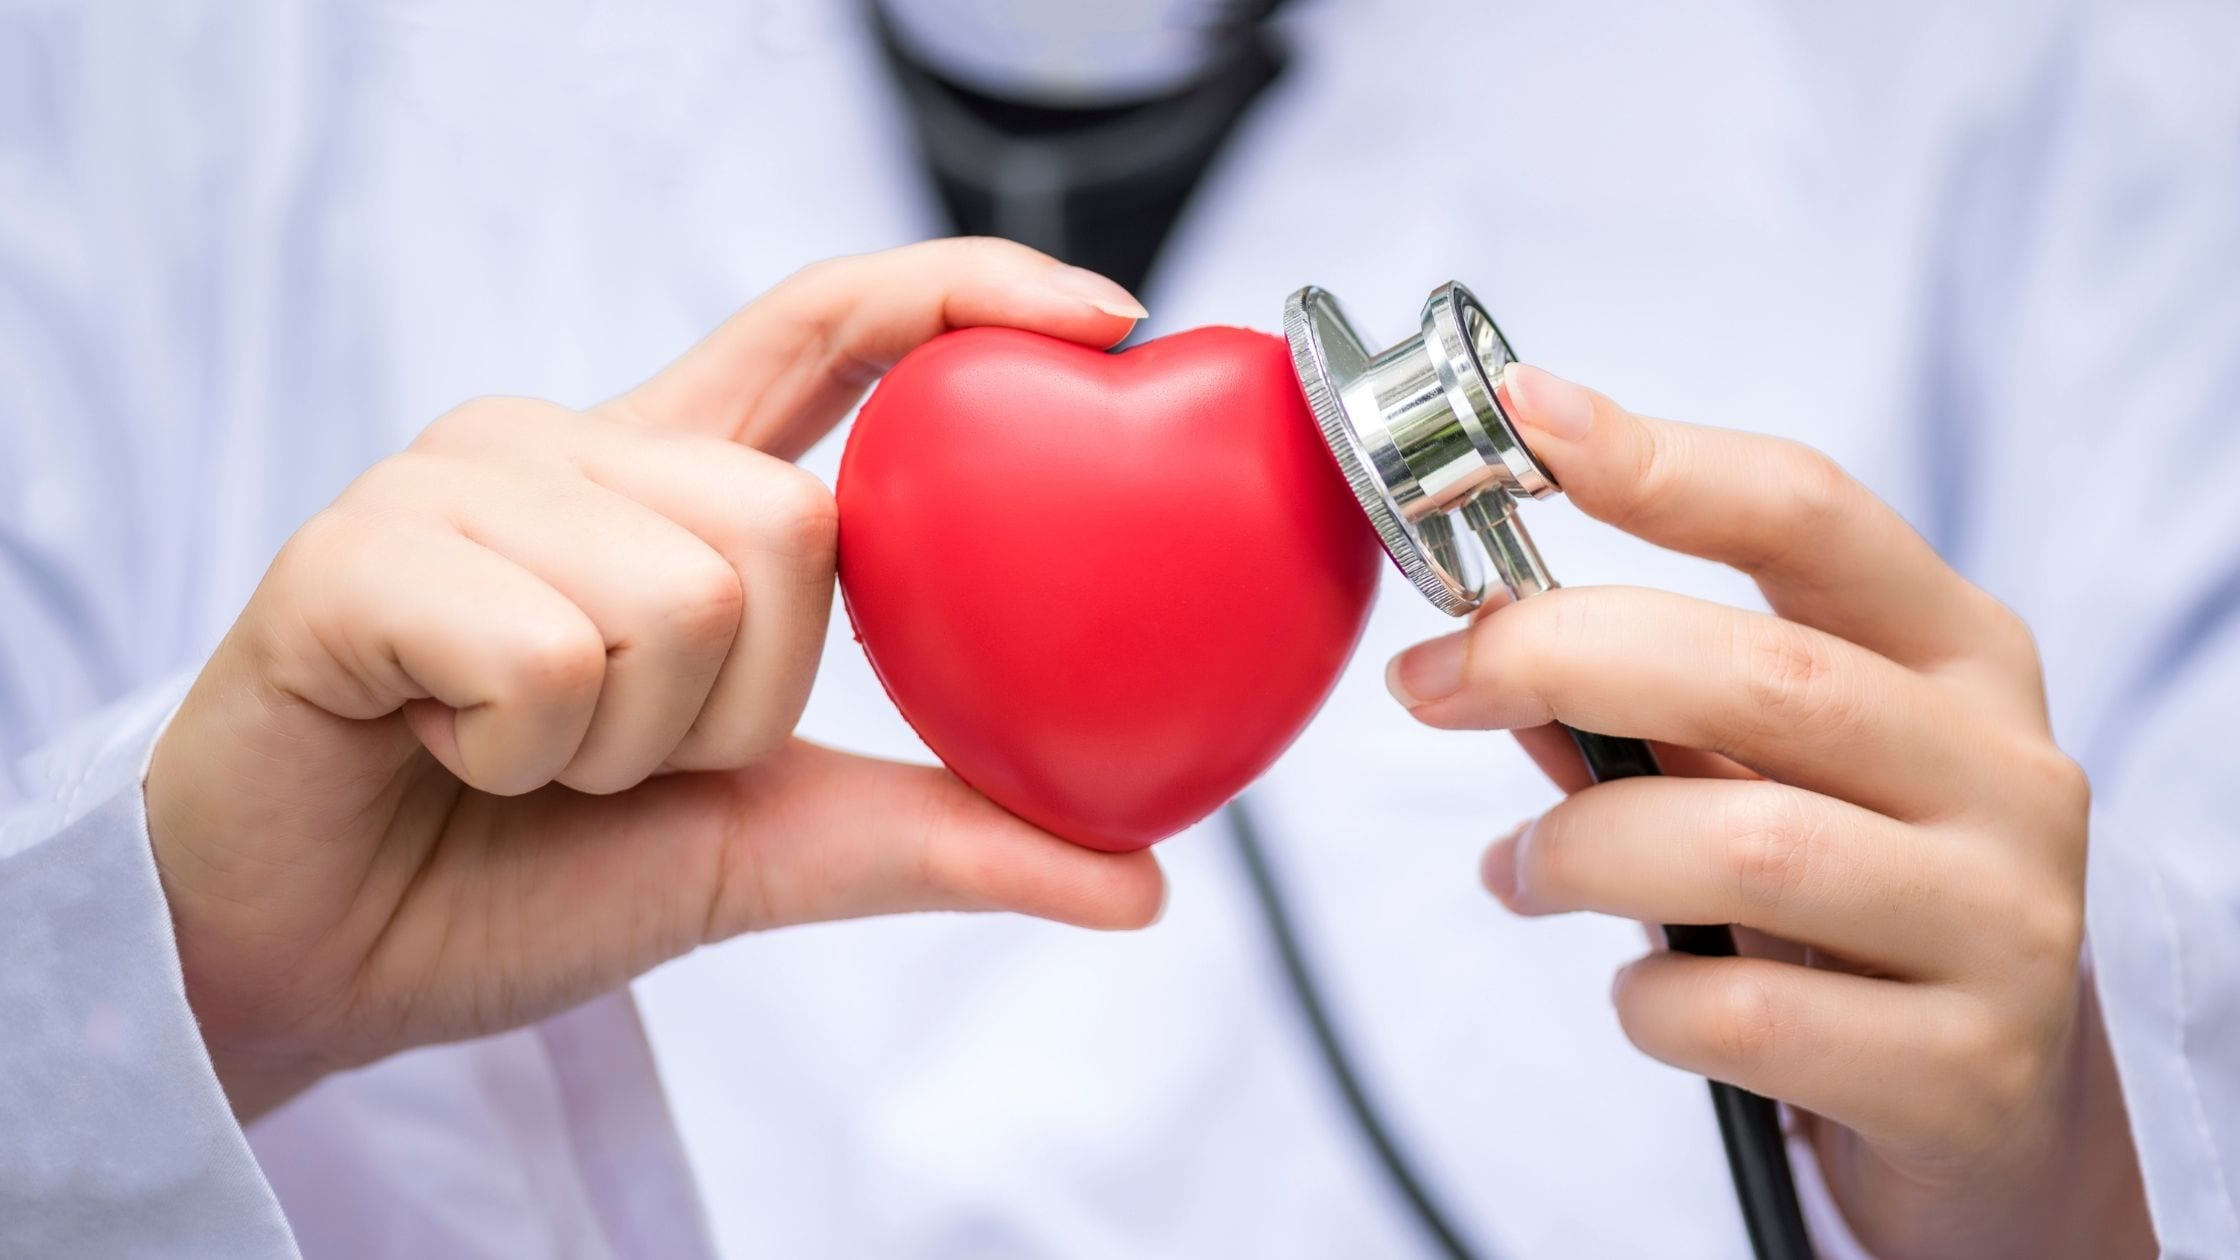 The Top Causes of Heart Disease